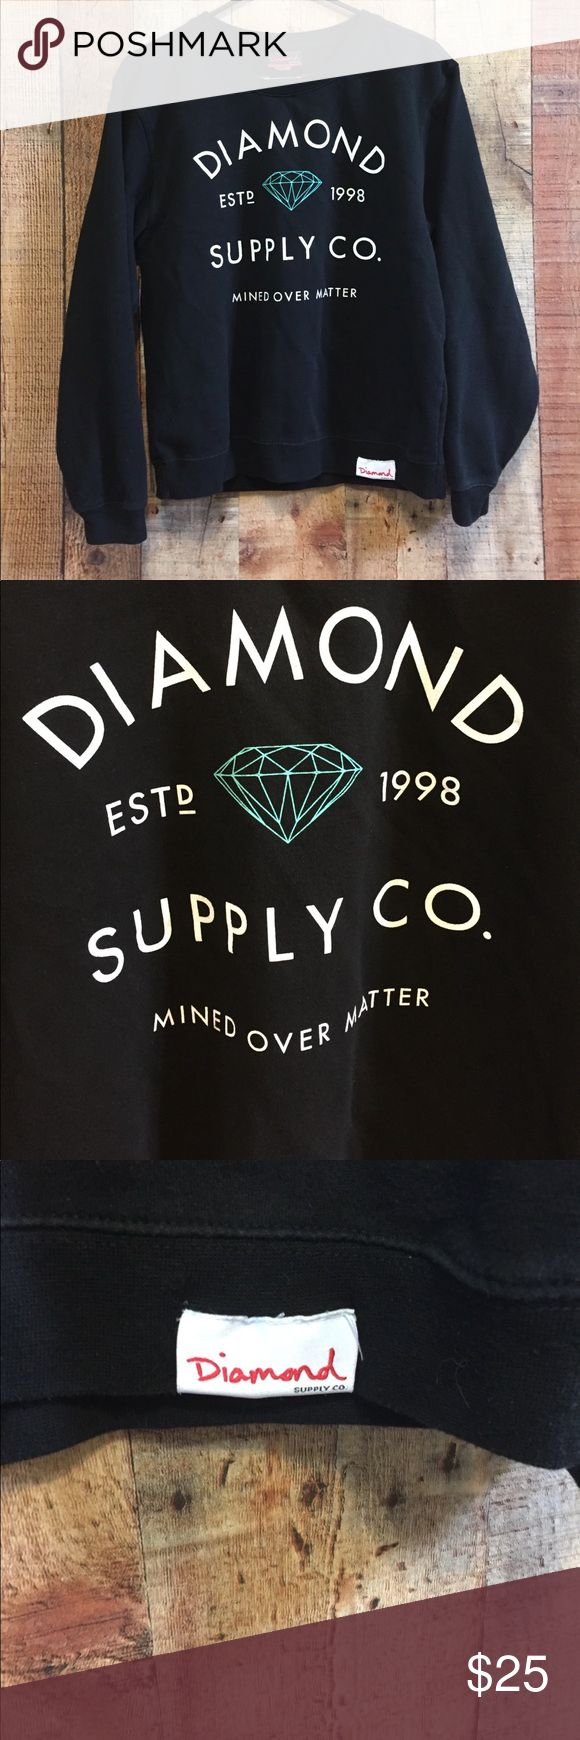 Diamond Supply Company Sweatshirt Black Diamond Supply Company sweatshirt. Writing is in white with turquoise diamond. In great shape. Some normal pilling along the bottom ribbing but nothing noticeable.   80% Cotton / 20% Polyester  Machine Wash Cold / Line Dry  Size M BUT fits like a Small Diamond Supply Co. Tops Sweatshirts & Hoodies